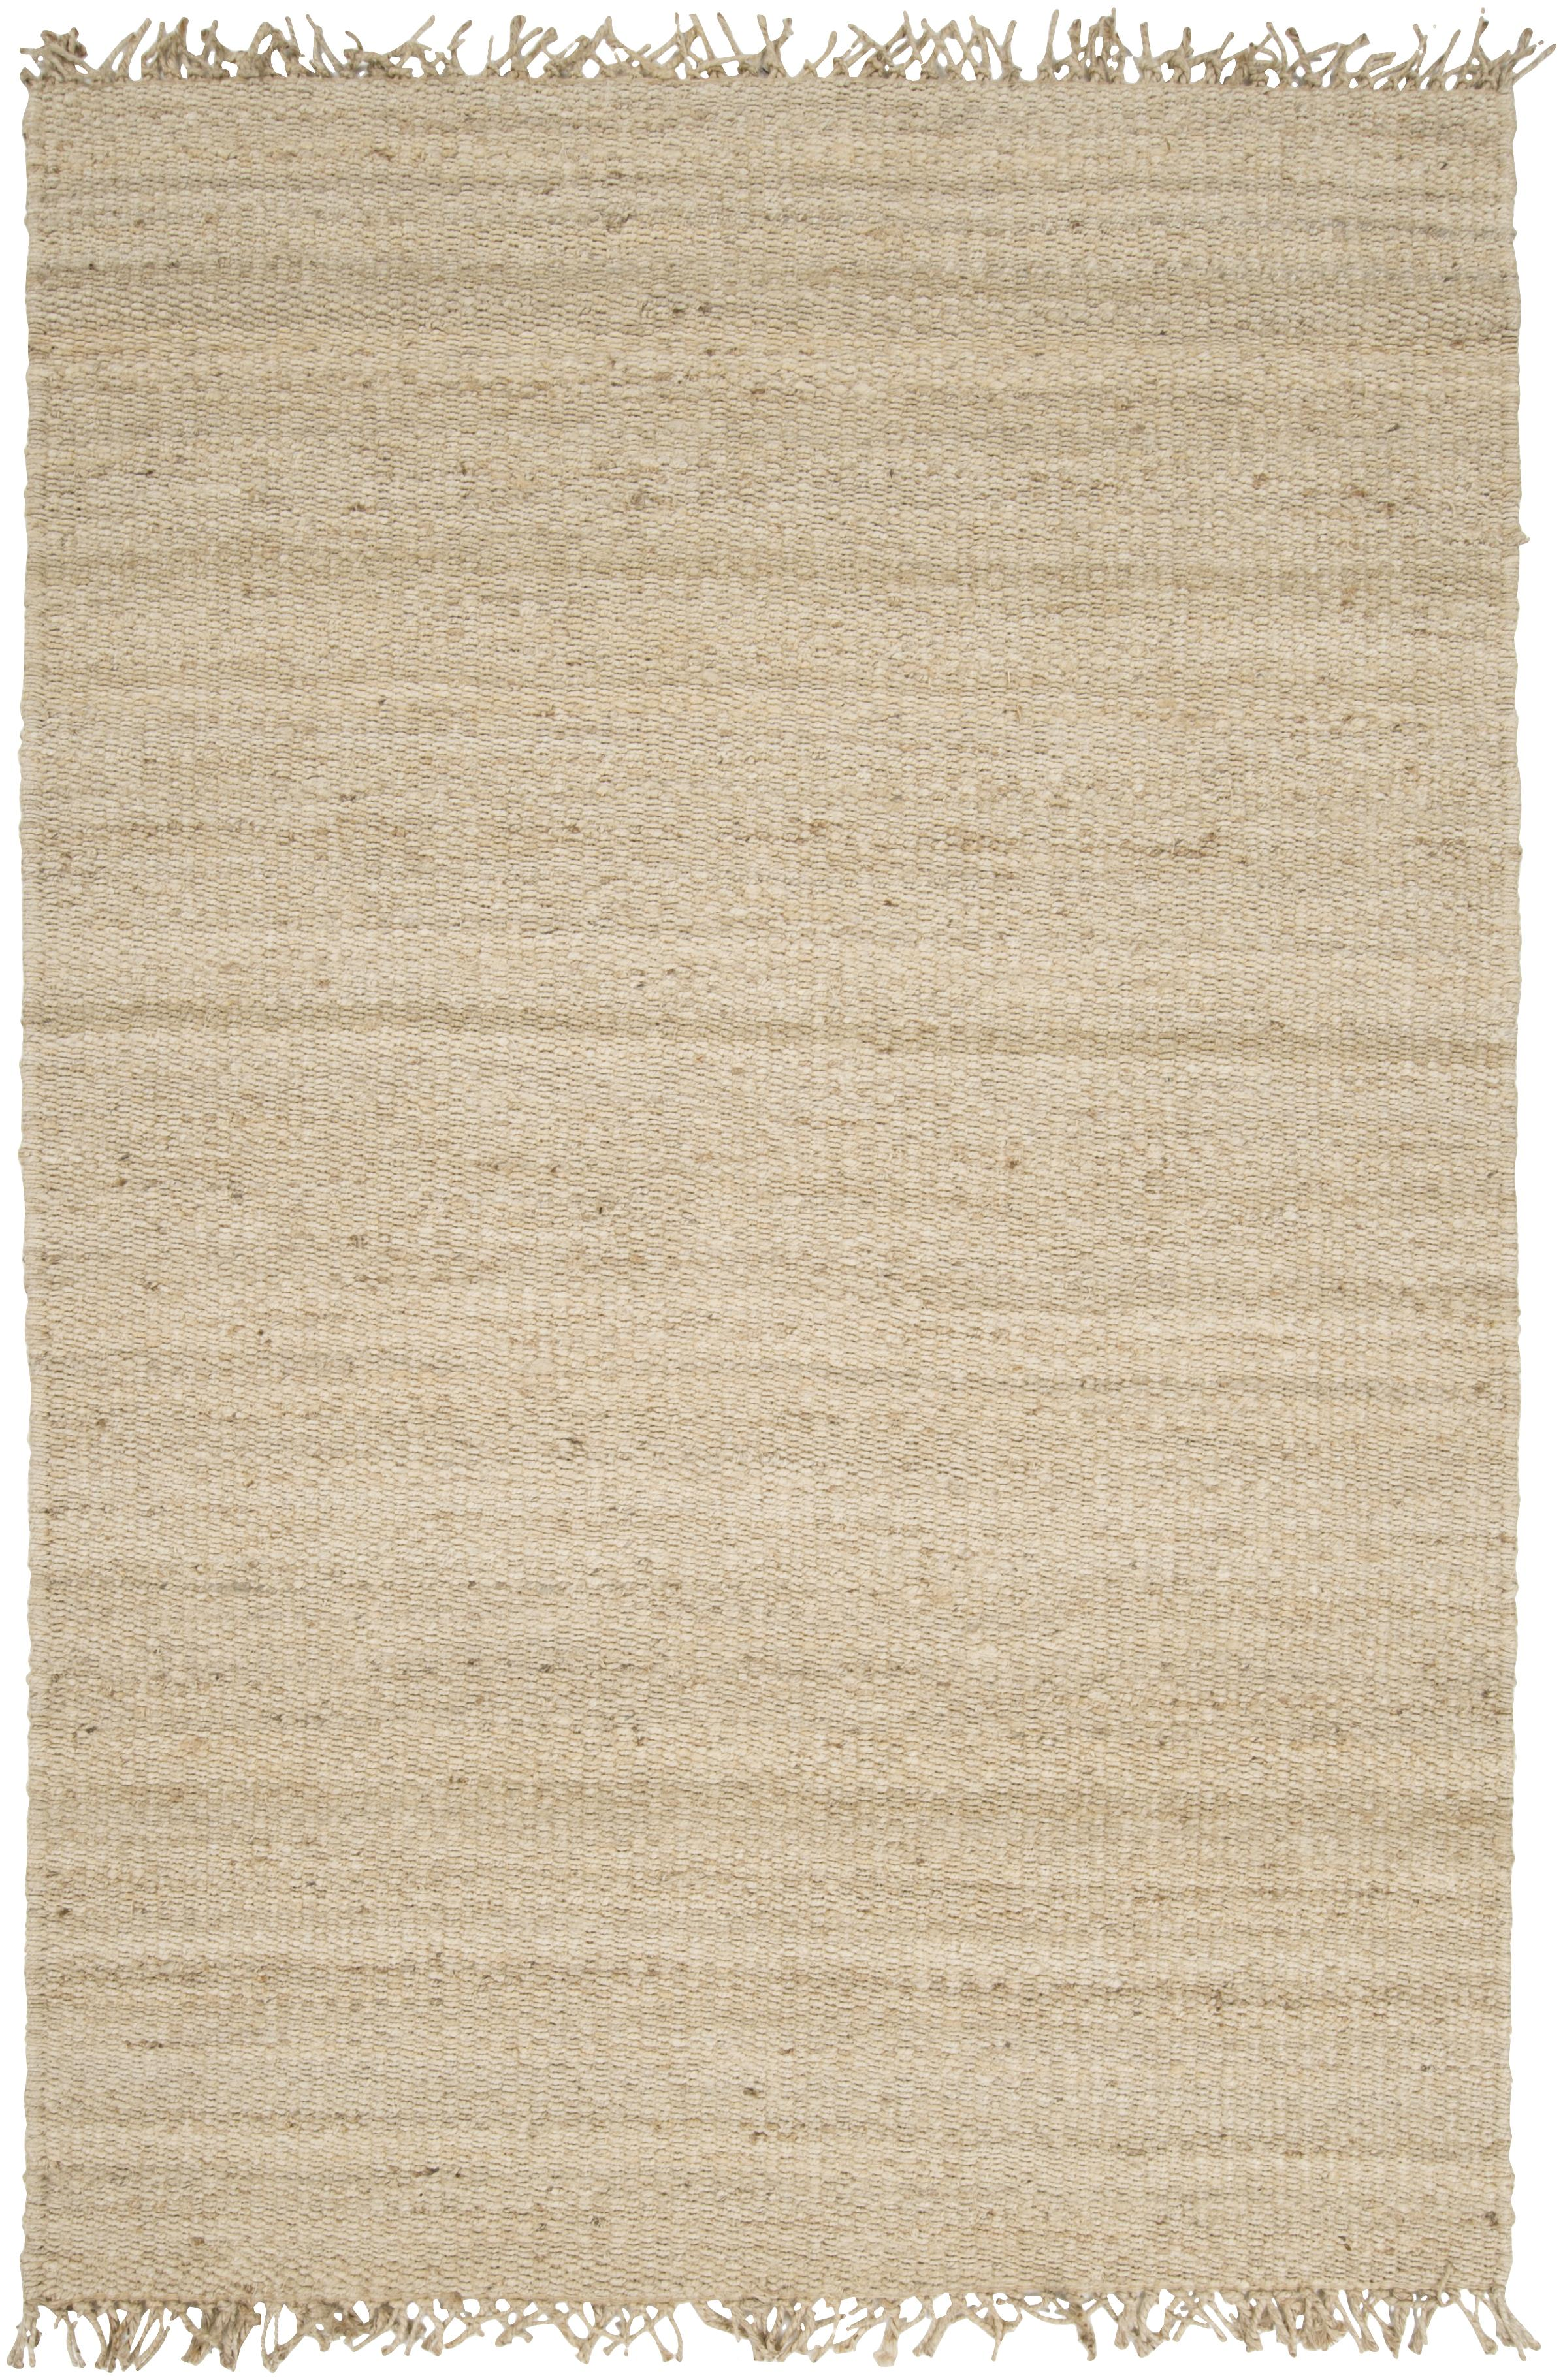 Jute Bleached 4' x 6' by Surya at Del Sol Furniture